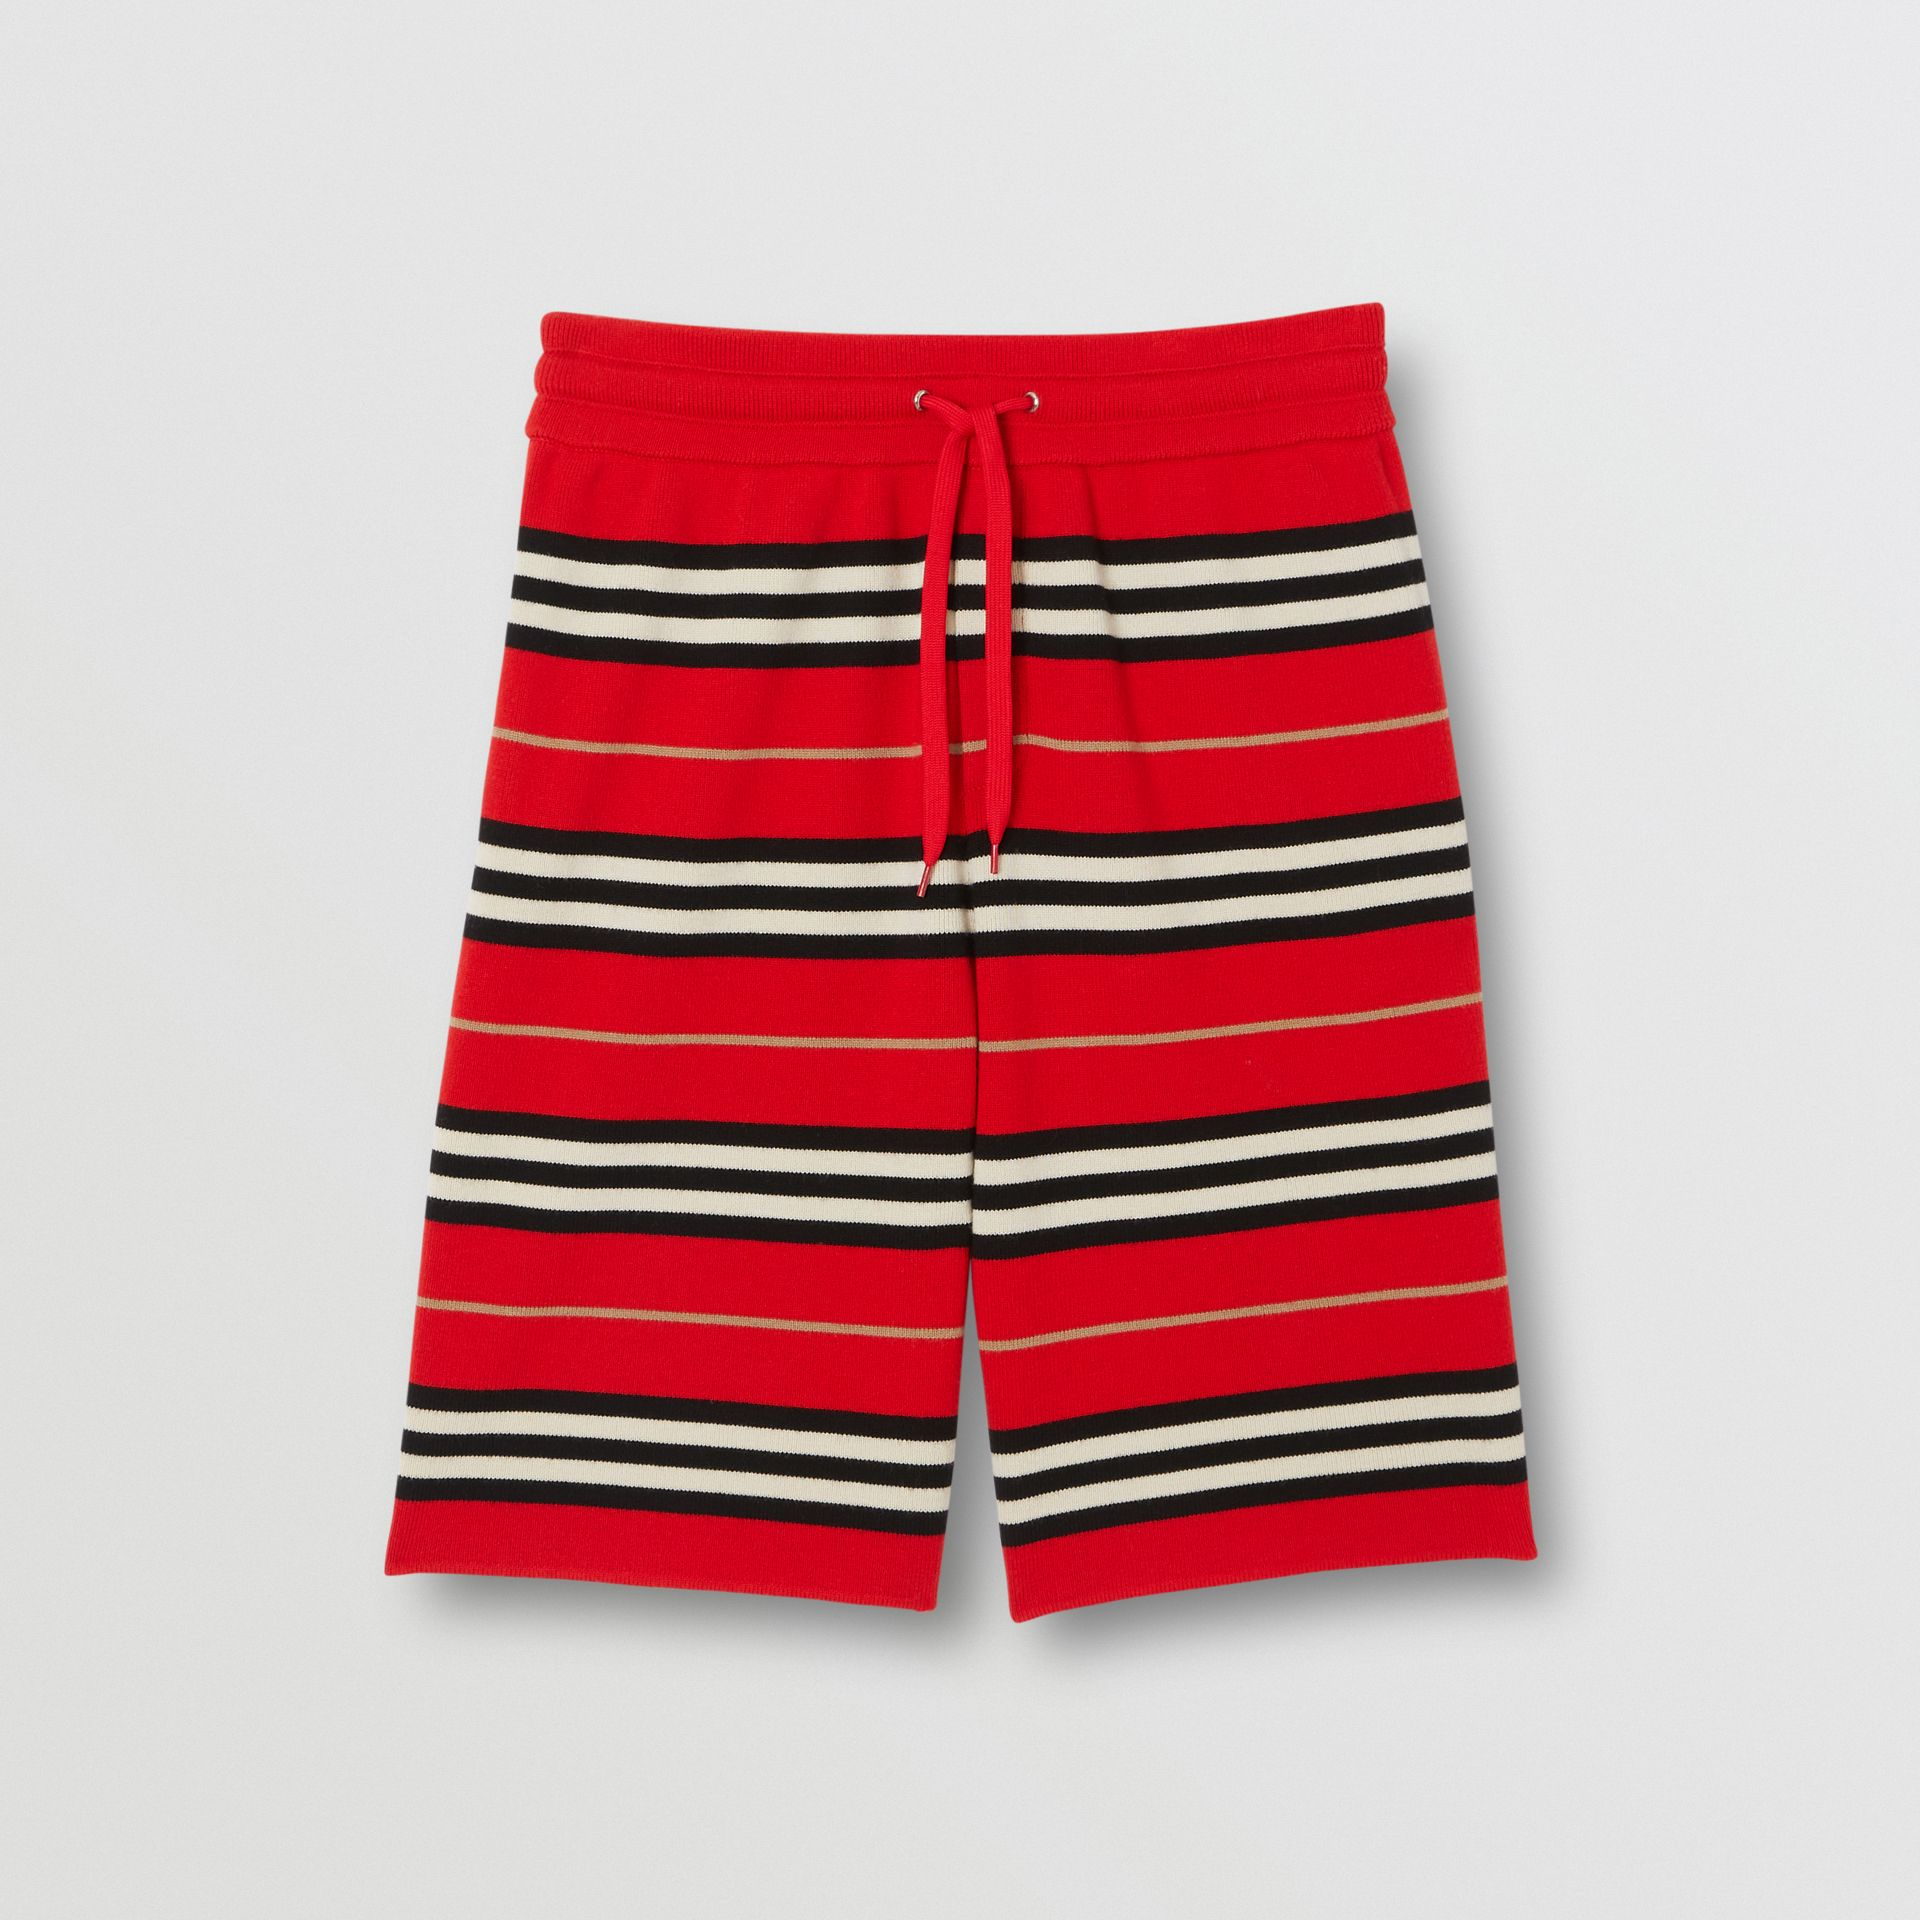 Merino Wool Drawcord Shorts in Bright Red | Burberry - gallery image 3